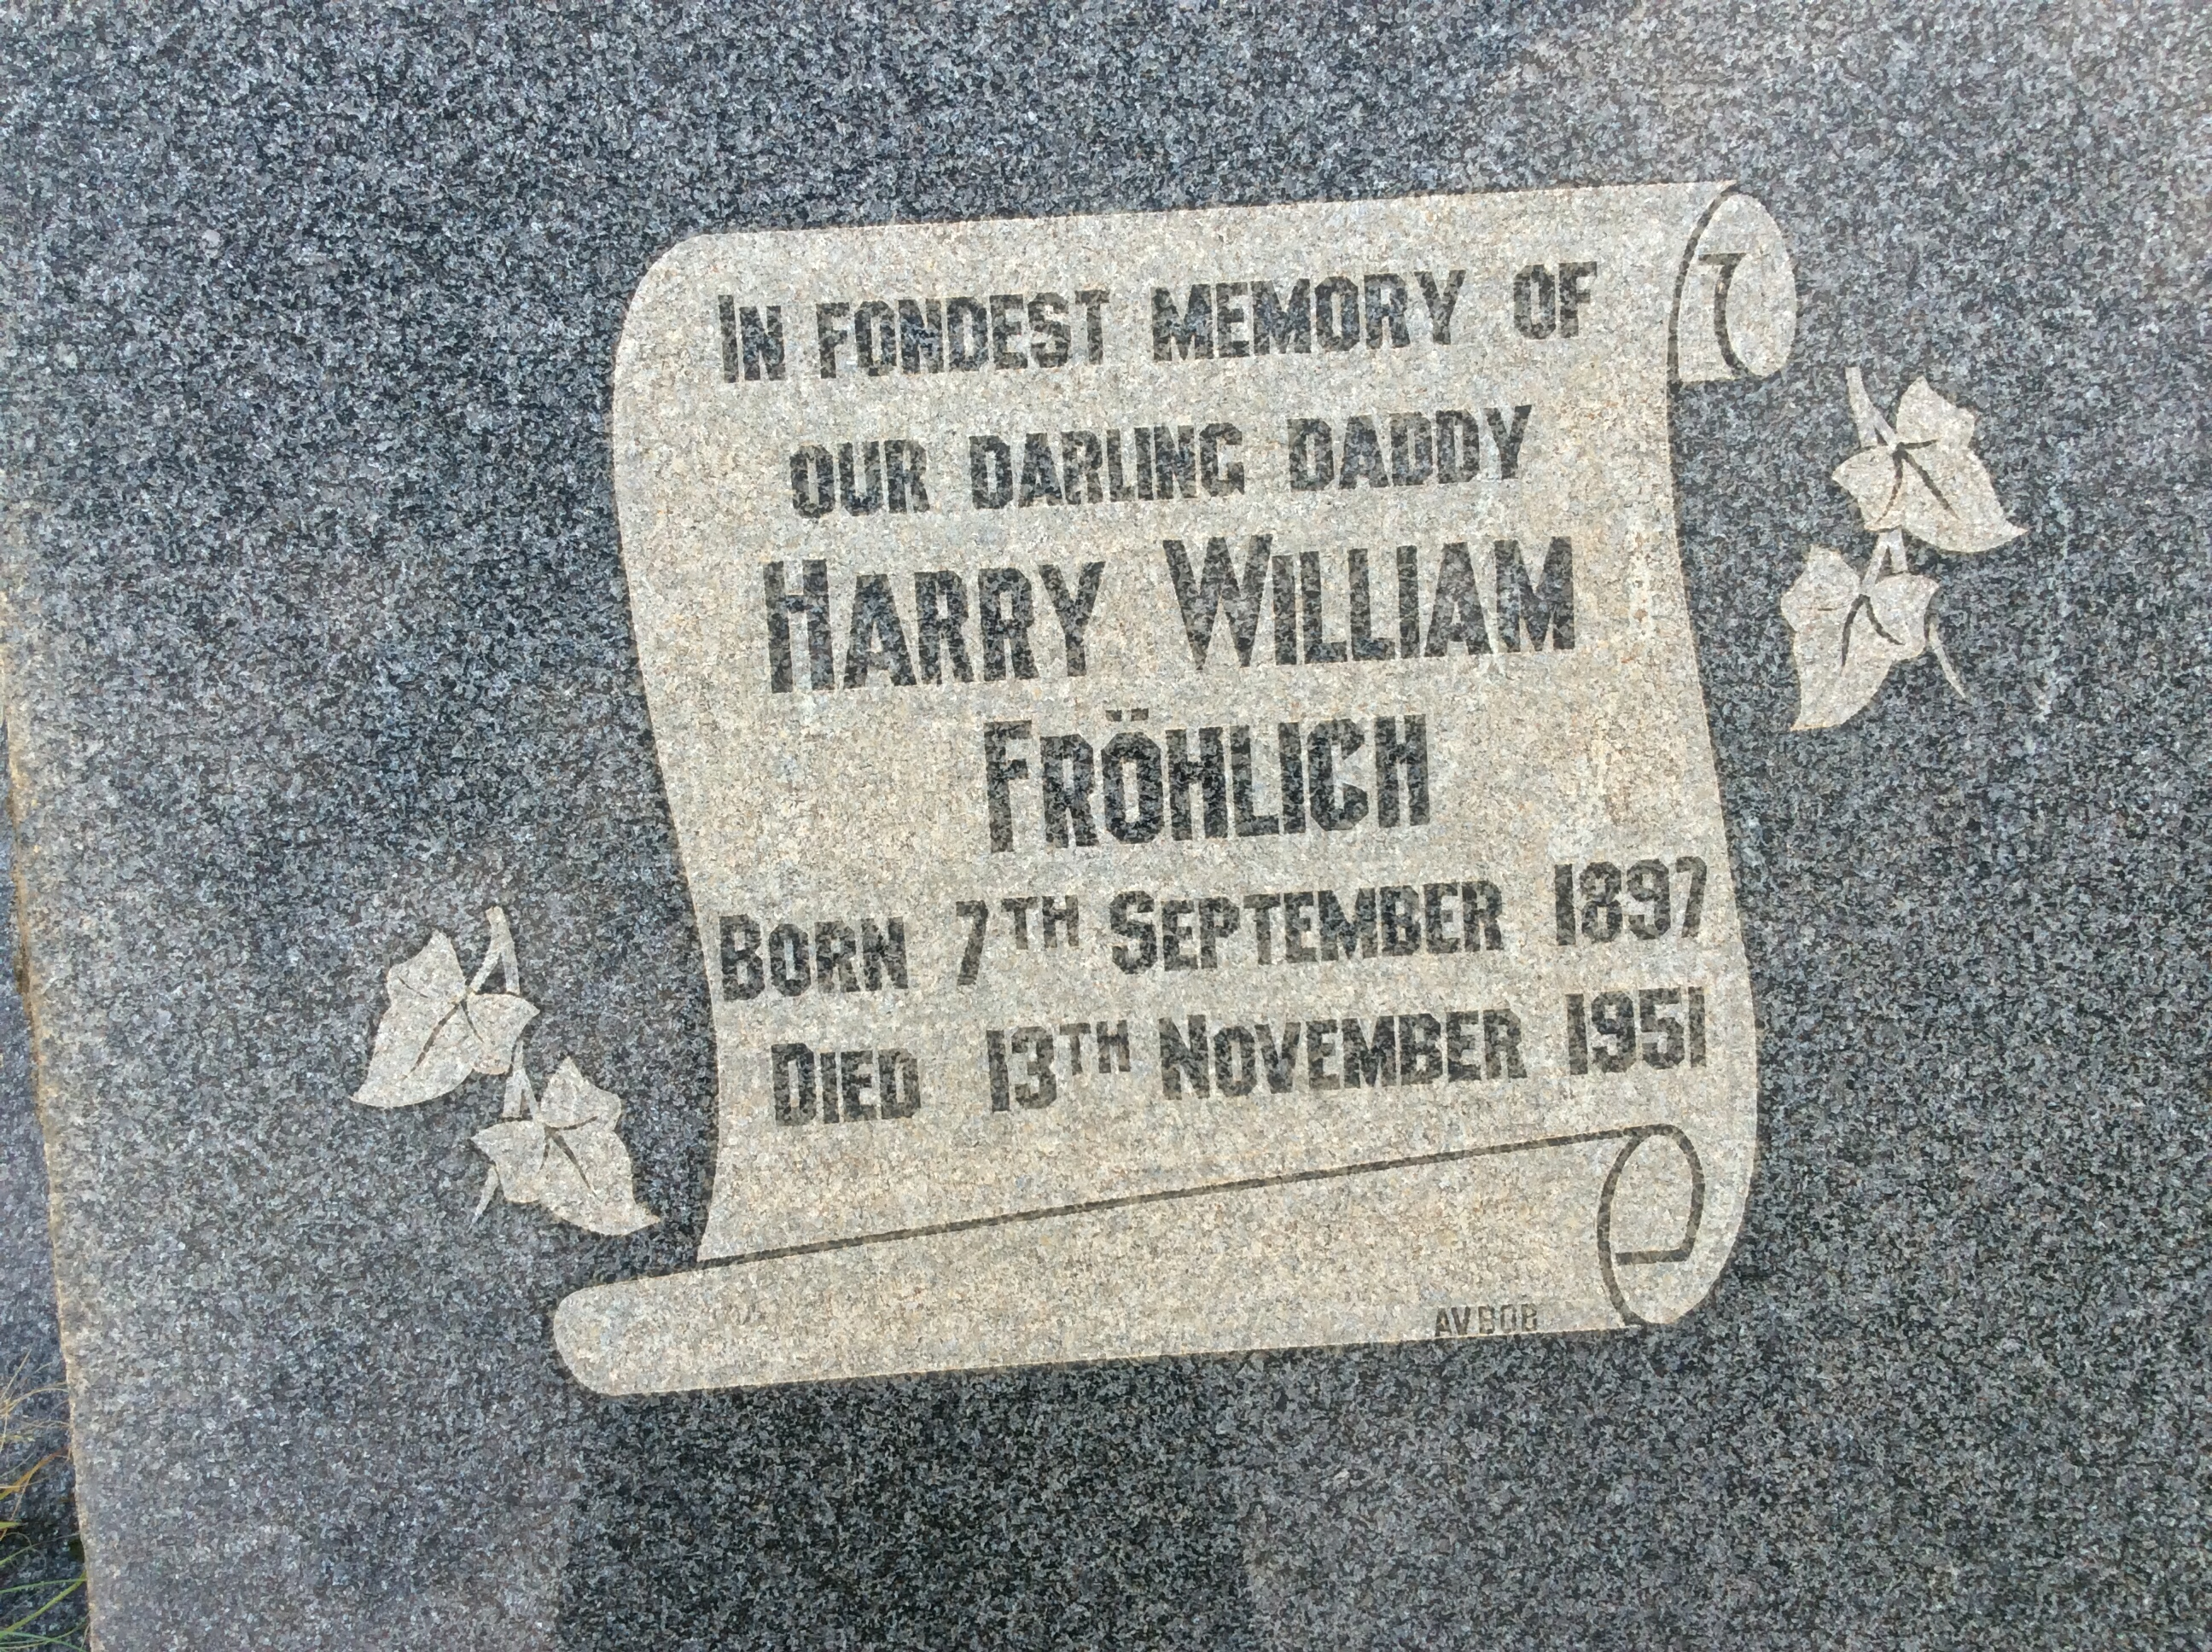 William Henry Frohlich